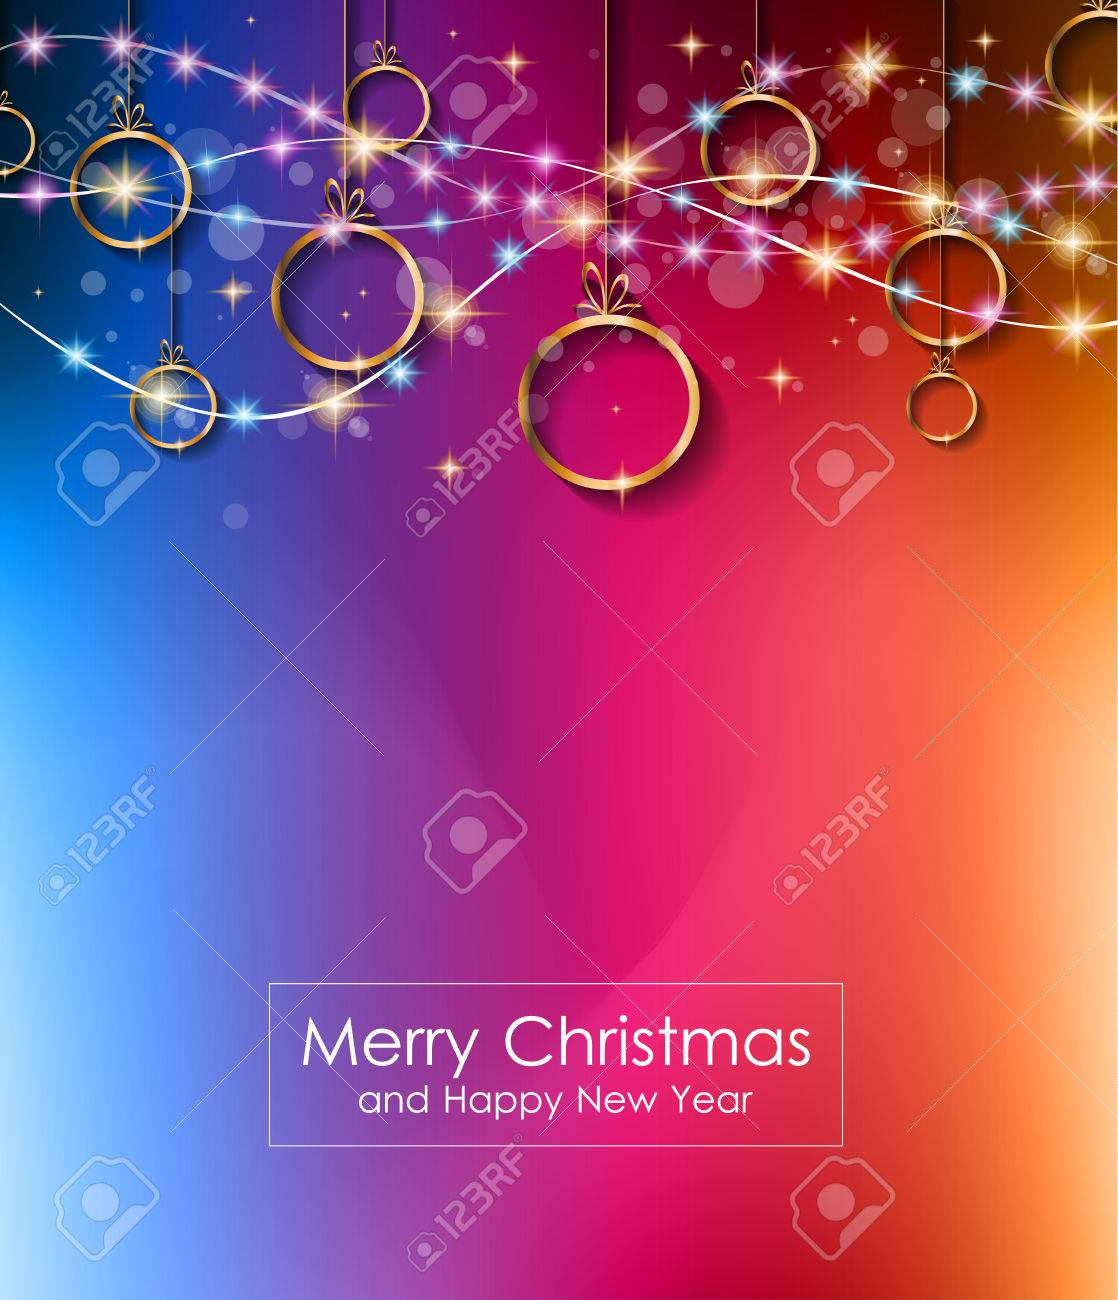 2016 Merry Christmas And Happy New Year Background For Seasonal